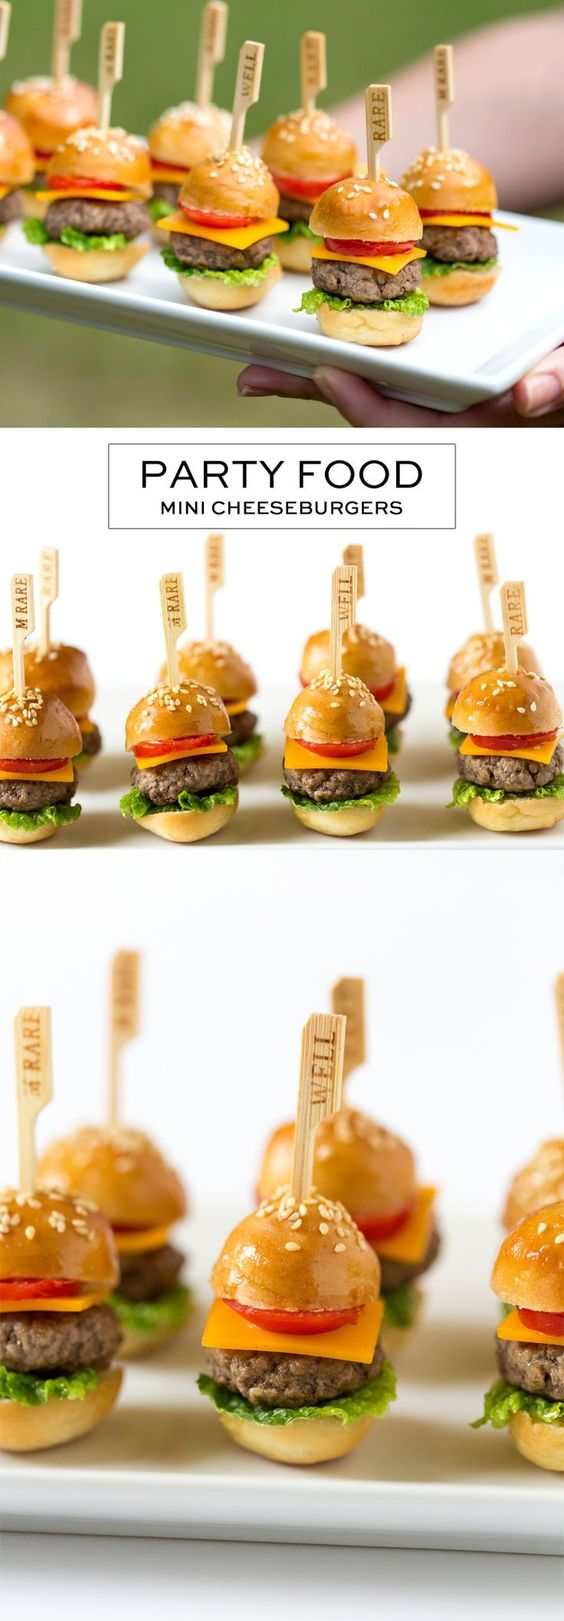 Perfect Party Food: How to Make Mini Cheeseburgers